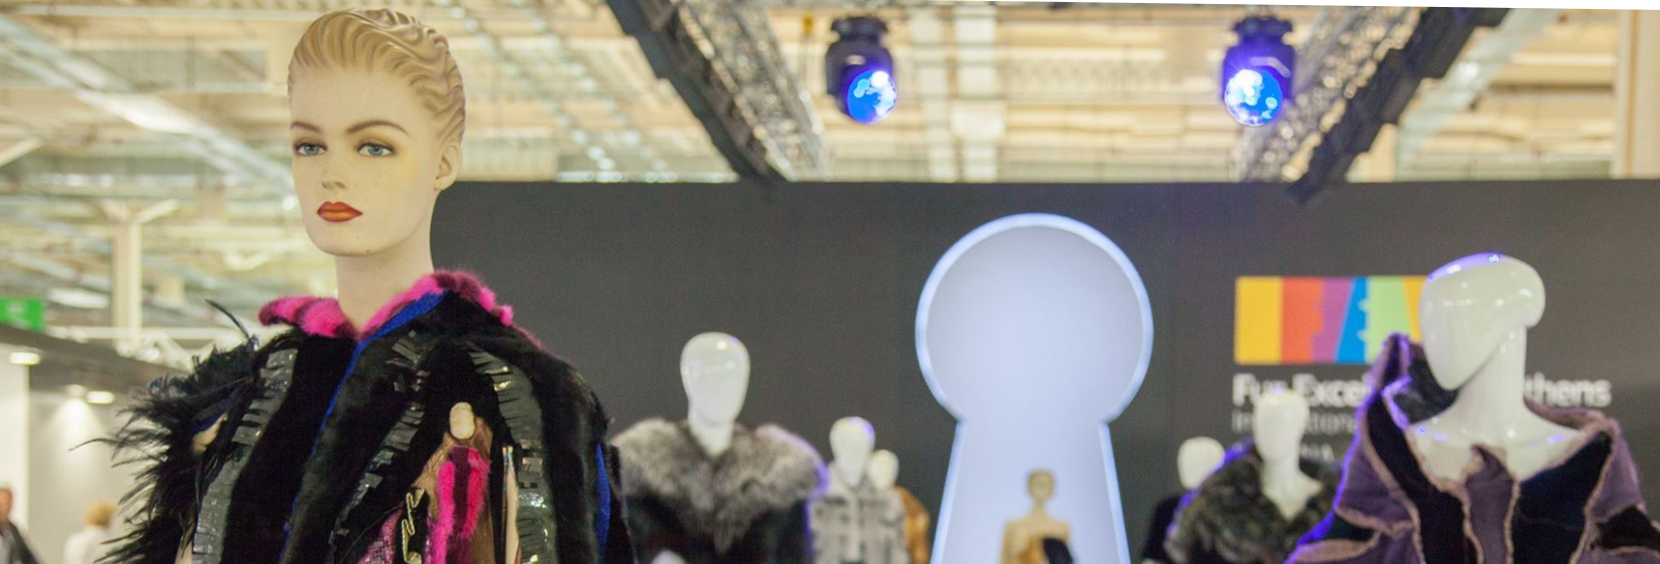 Fur Excellence in Athens: where creativity and business go hand in hand